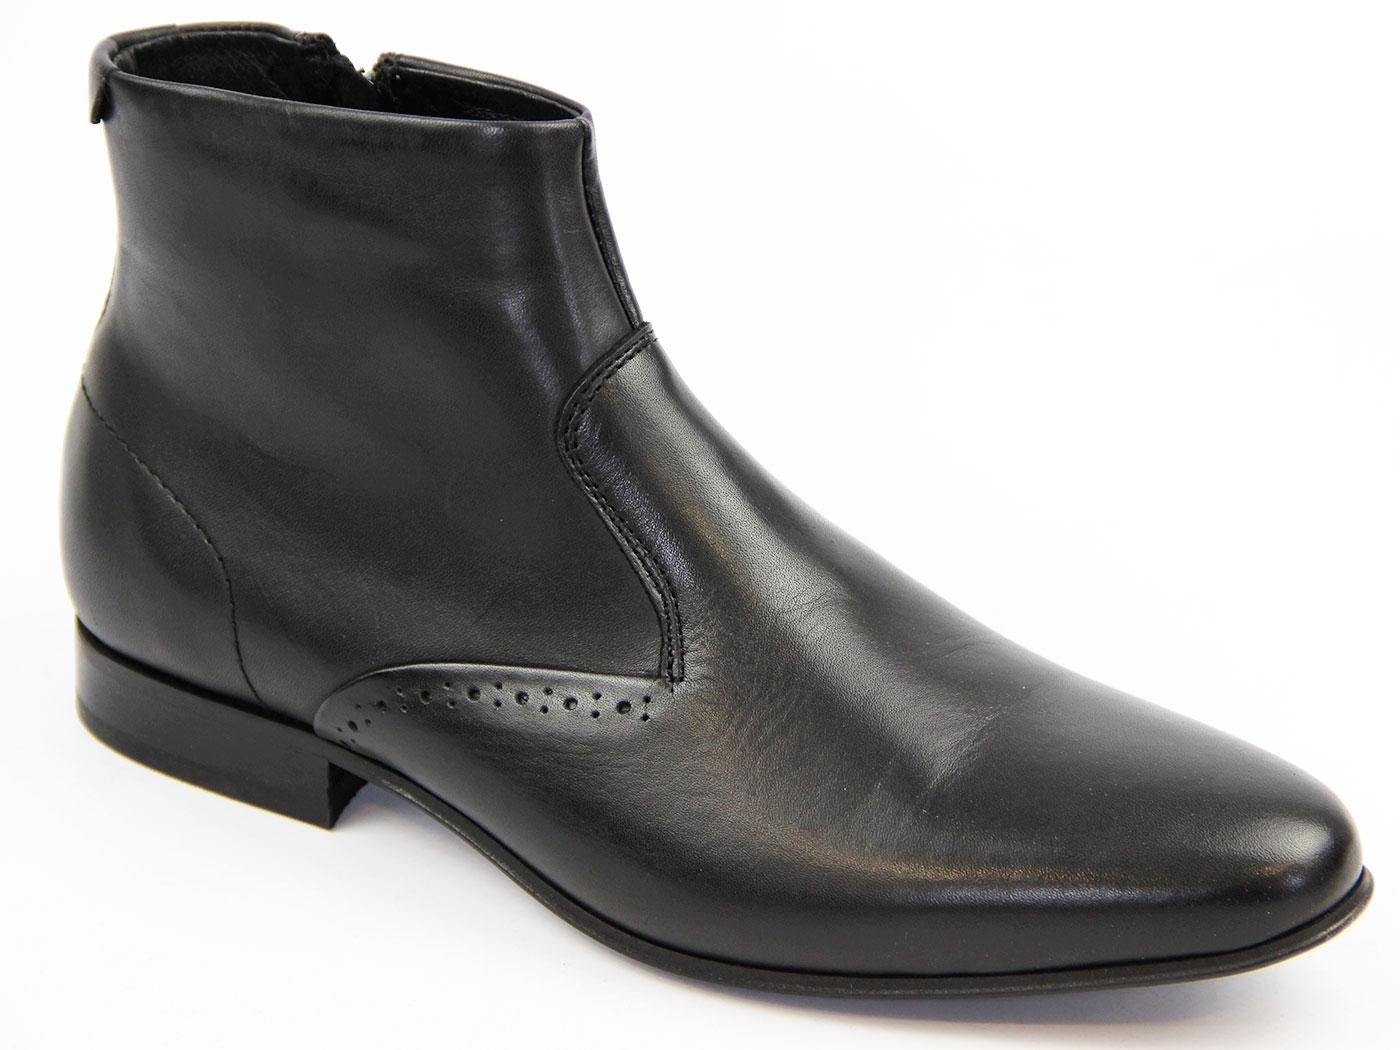 Stallings H by HUDSON 60s Mod Brogue Chelsea Boots